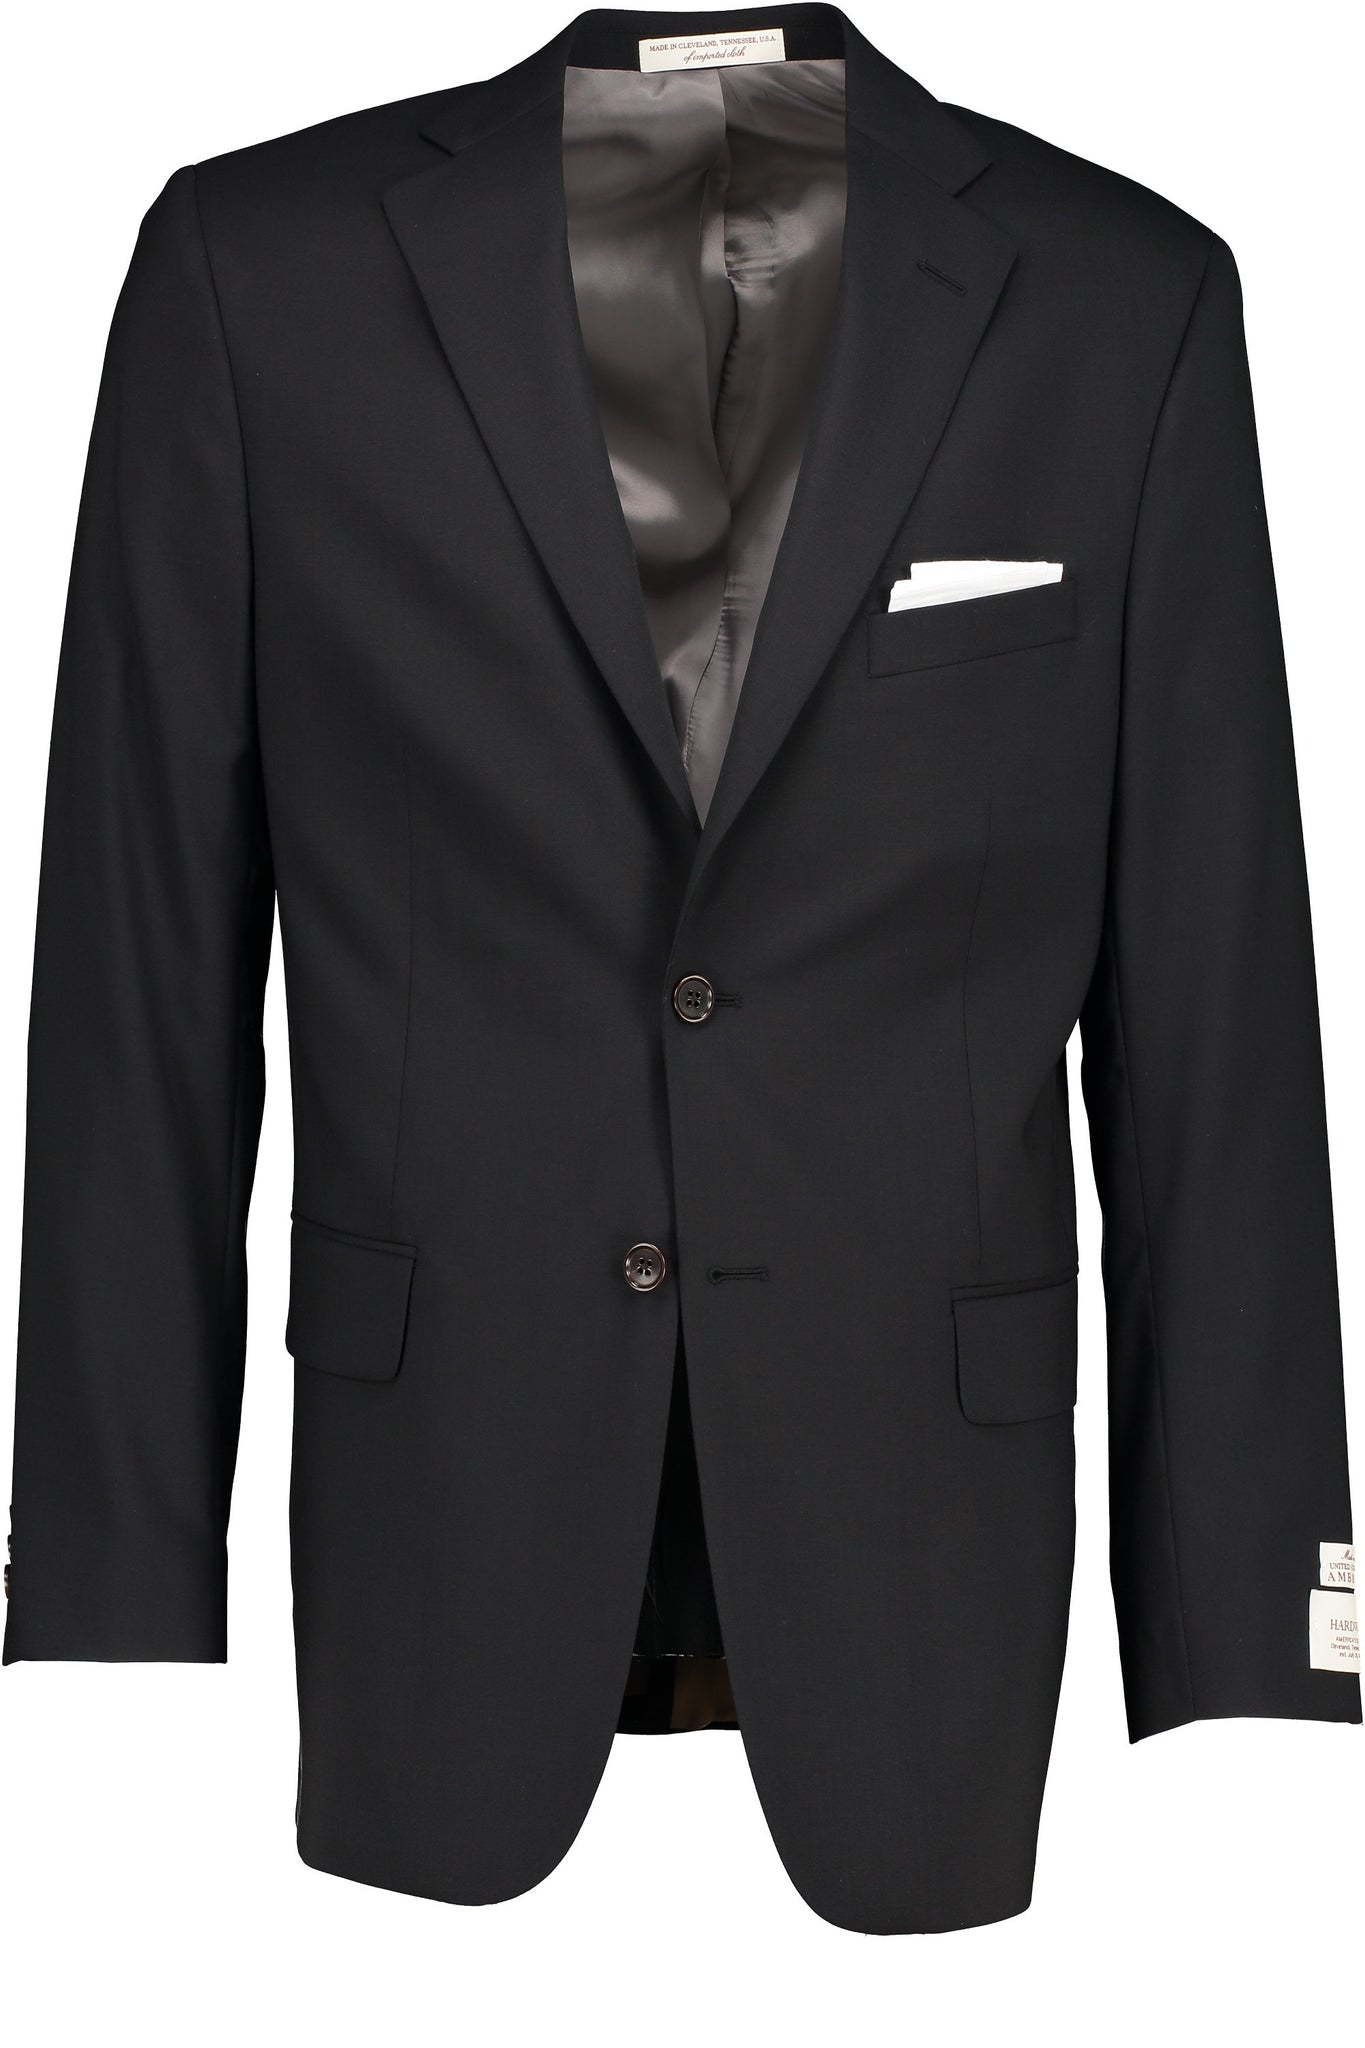 Classic Fit Black H-Tech Wool Suit Separate Jacket -  Hardwick.com